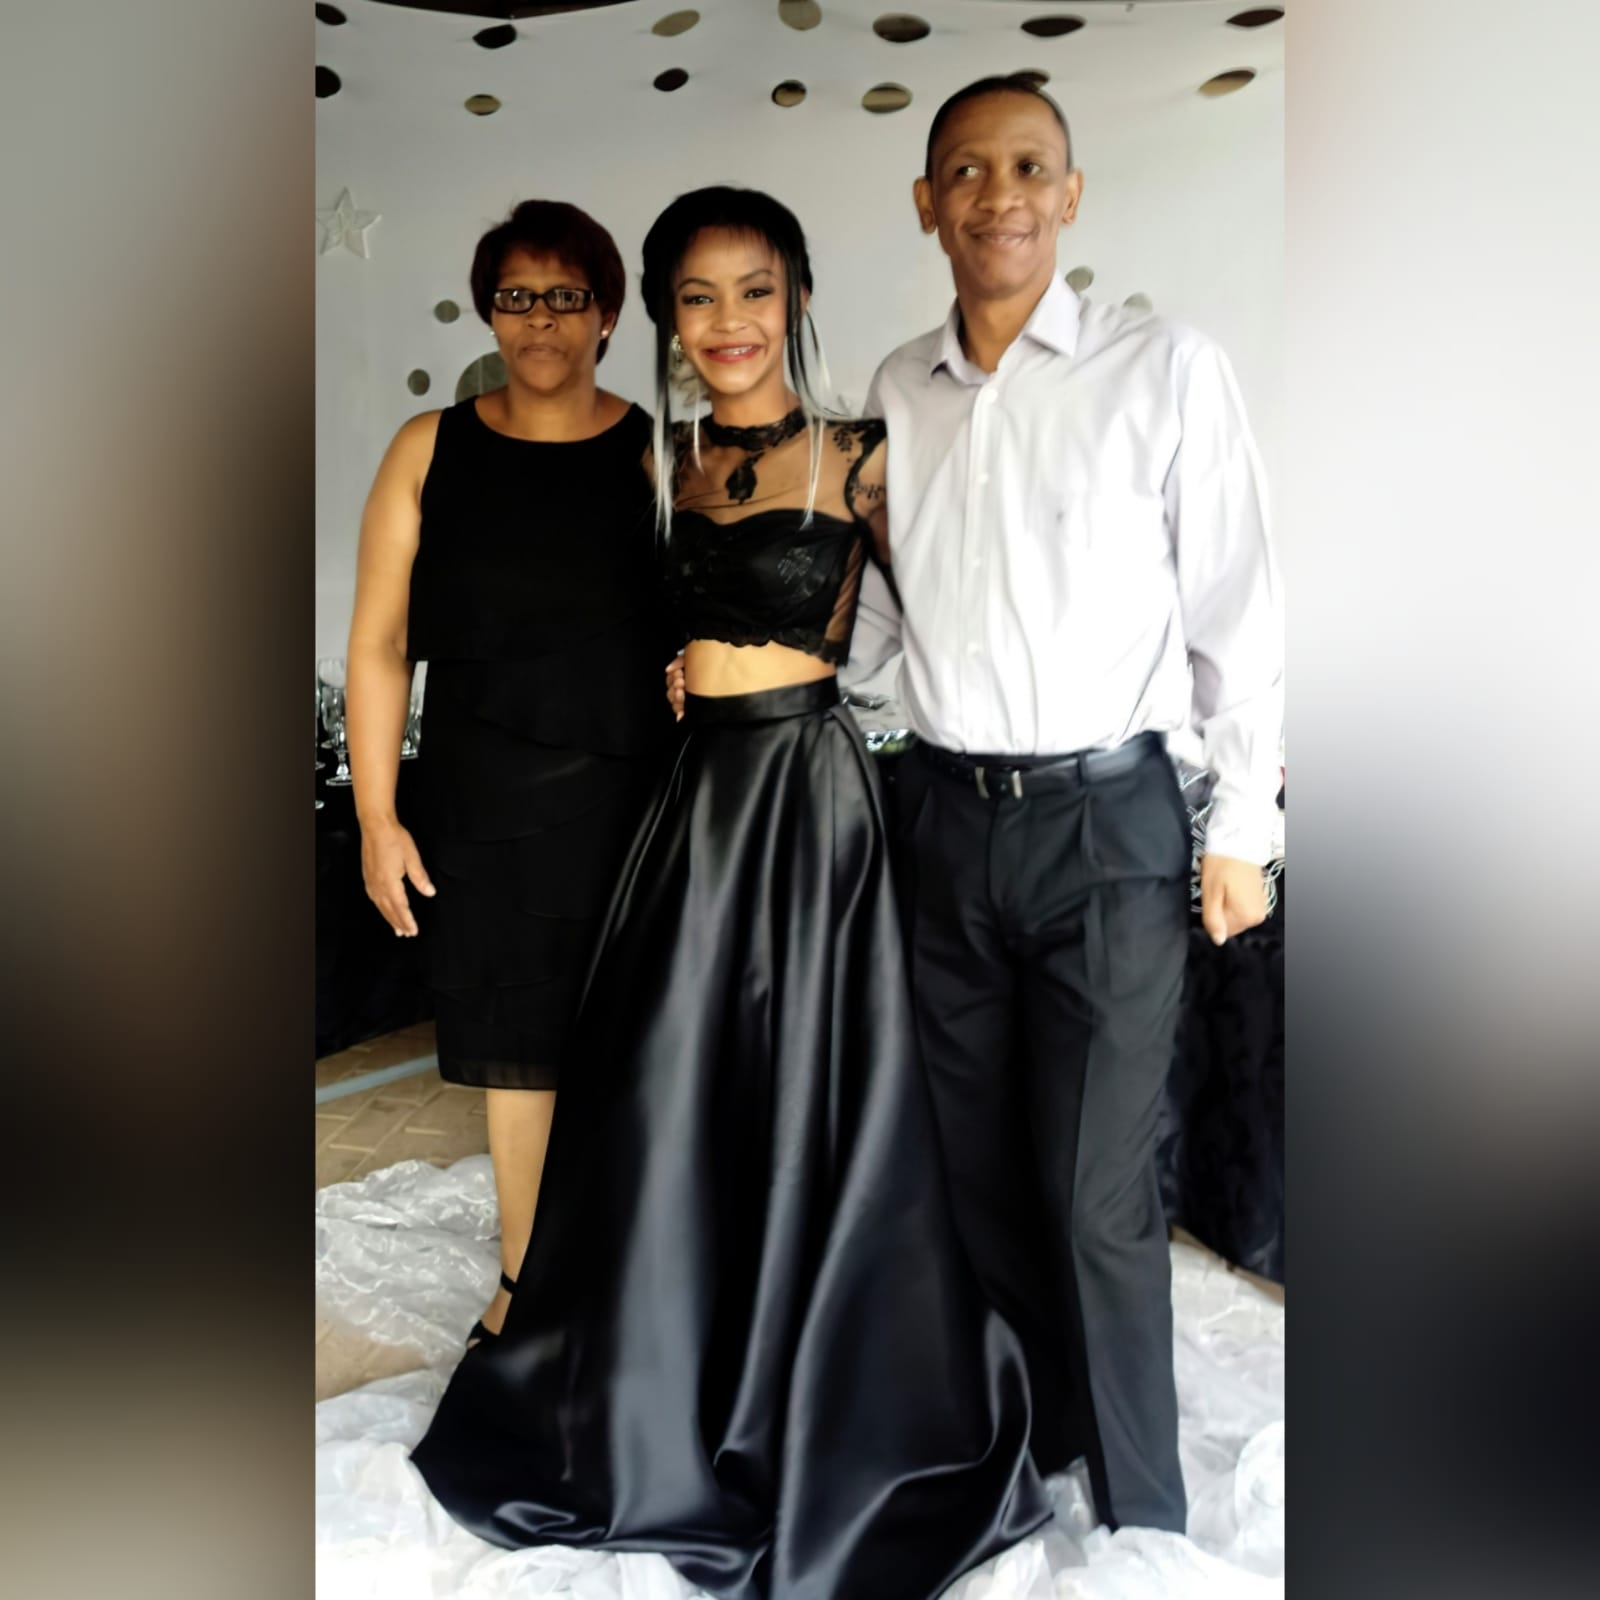 2 piece black prom dress with lace top 3 my client looked stunning in the 2 piece black prom dress i created for her. A lace top with sheer neckline and long sleeves, with a diamond shape opening. With a wide, flowy duchess's satin skirt